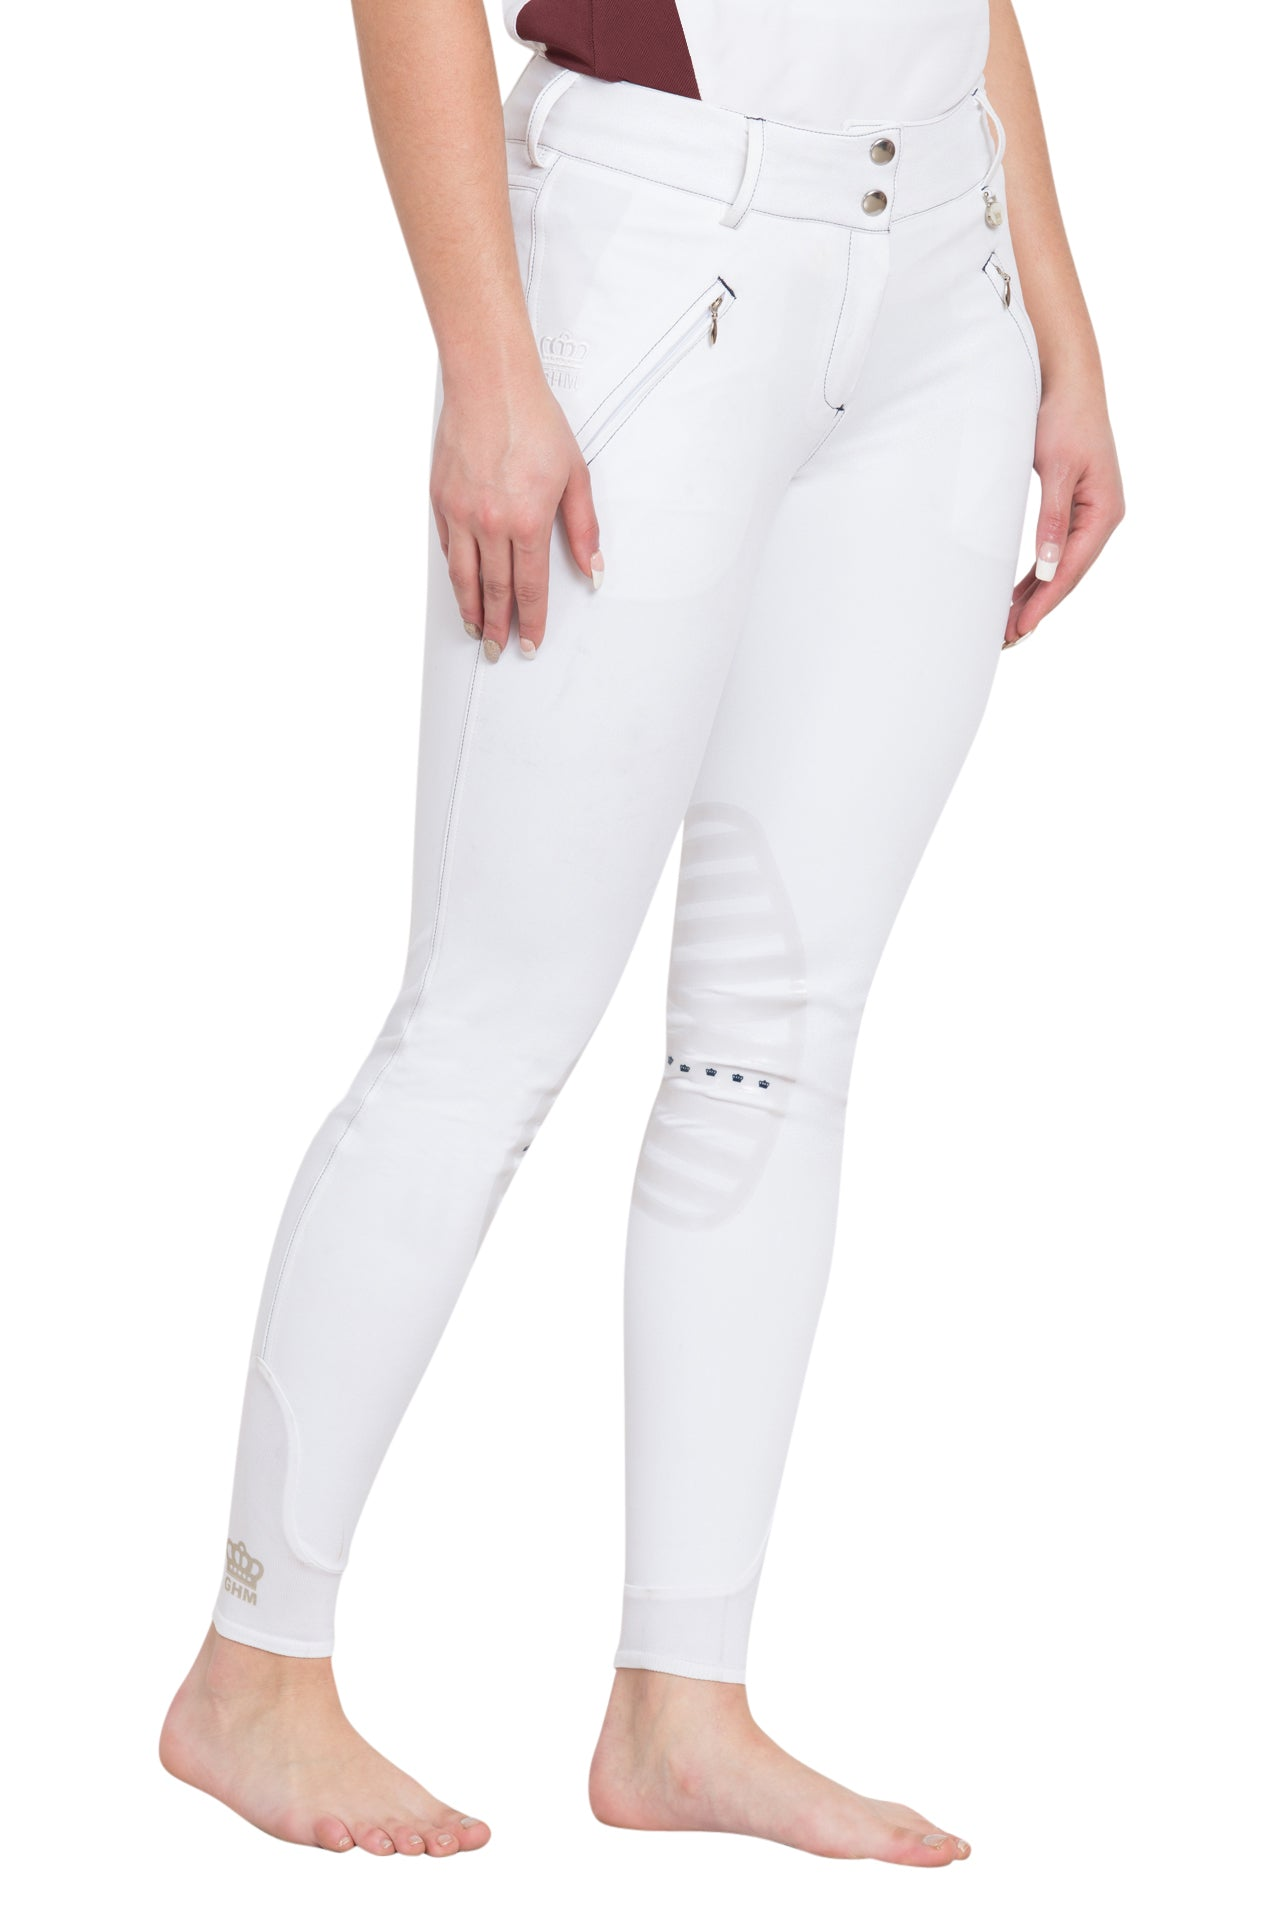 George H Morris Ladies Derby Silicone Knee Patch Breeches_719